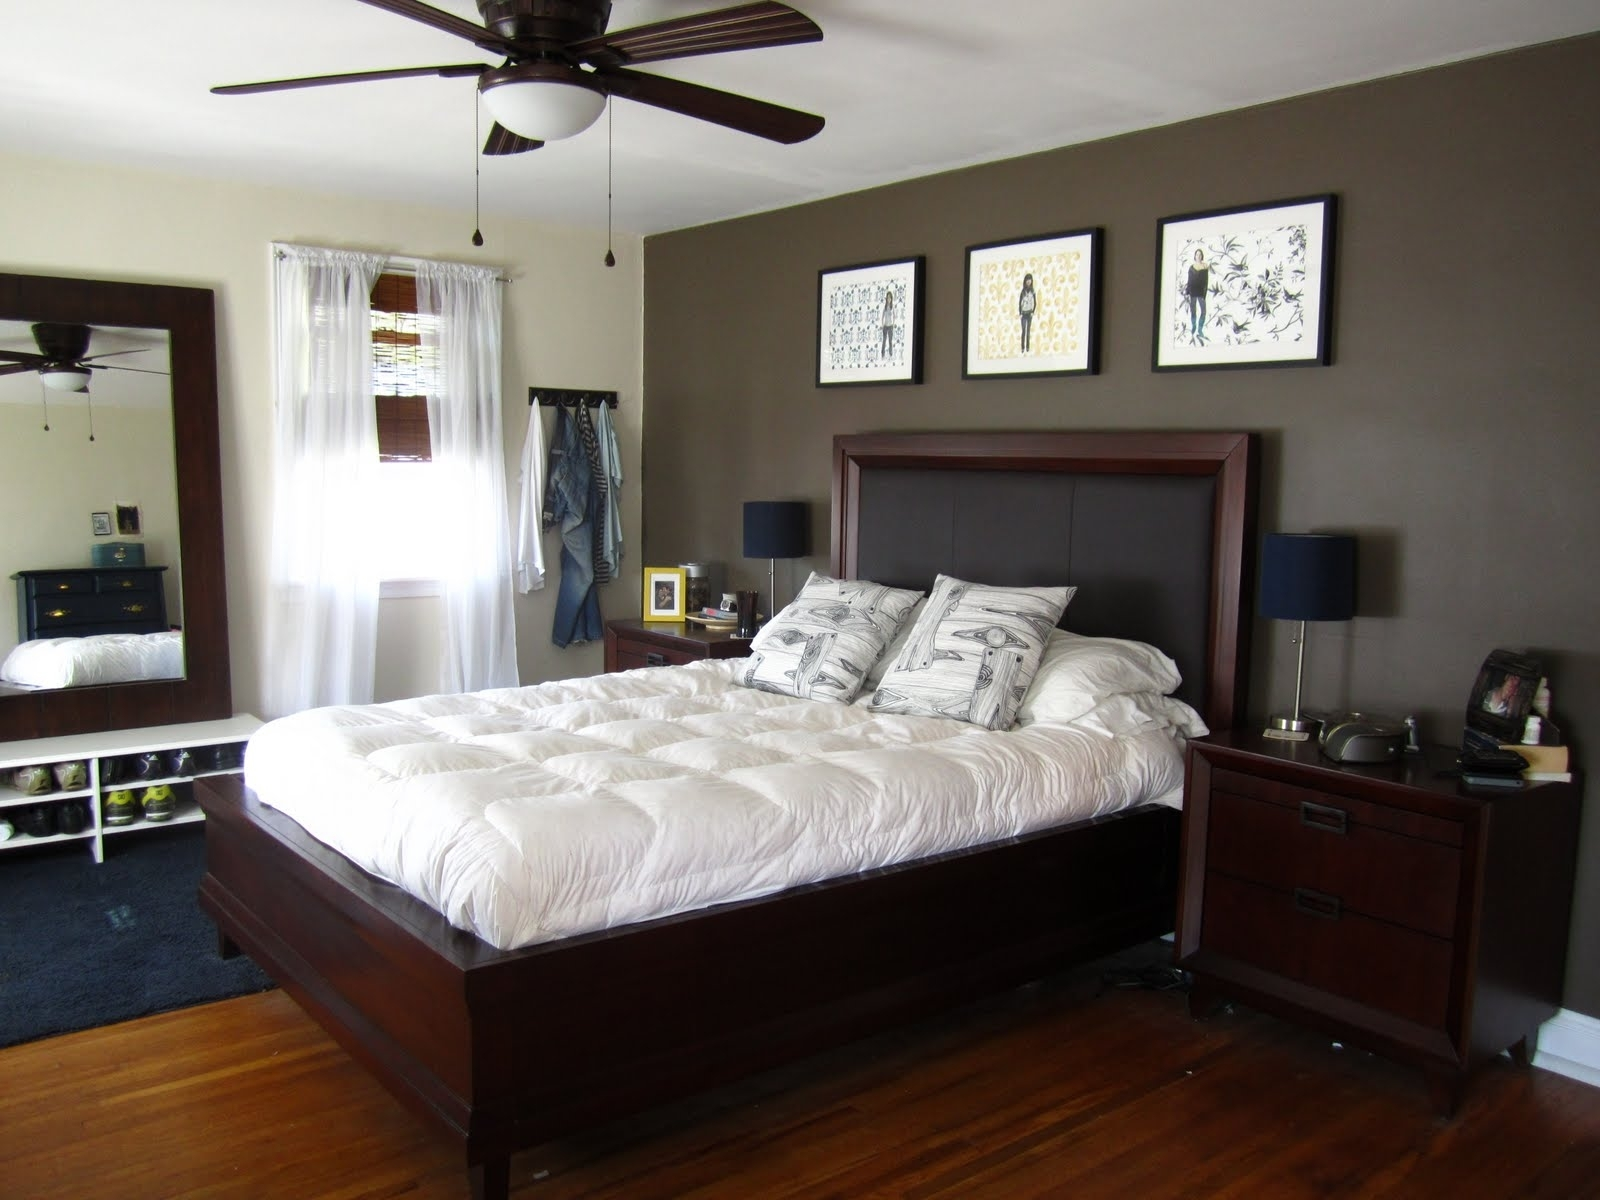 Bedroom Design: Focal Wall Black Accent Wall Accent Wall Designs Inside Most Popular Wall Accents For Small Bedroom (Gallery 6 of 15)